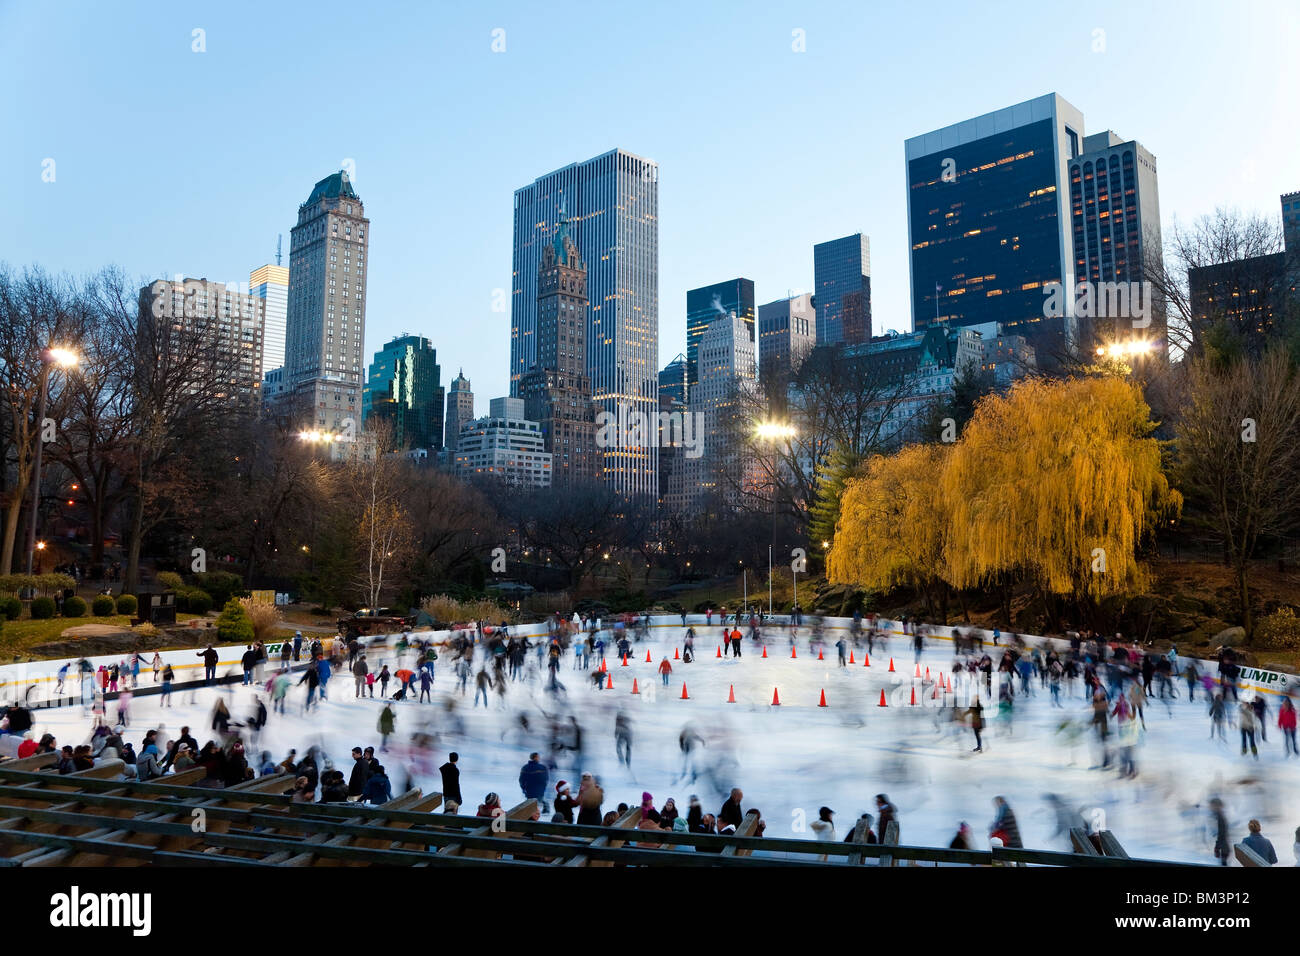 United States of America, New York, New York City, Manhattan, Wollman Ice rink in Central Park - Stock Image